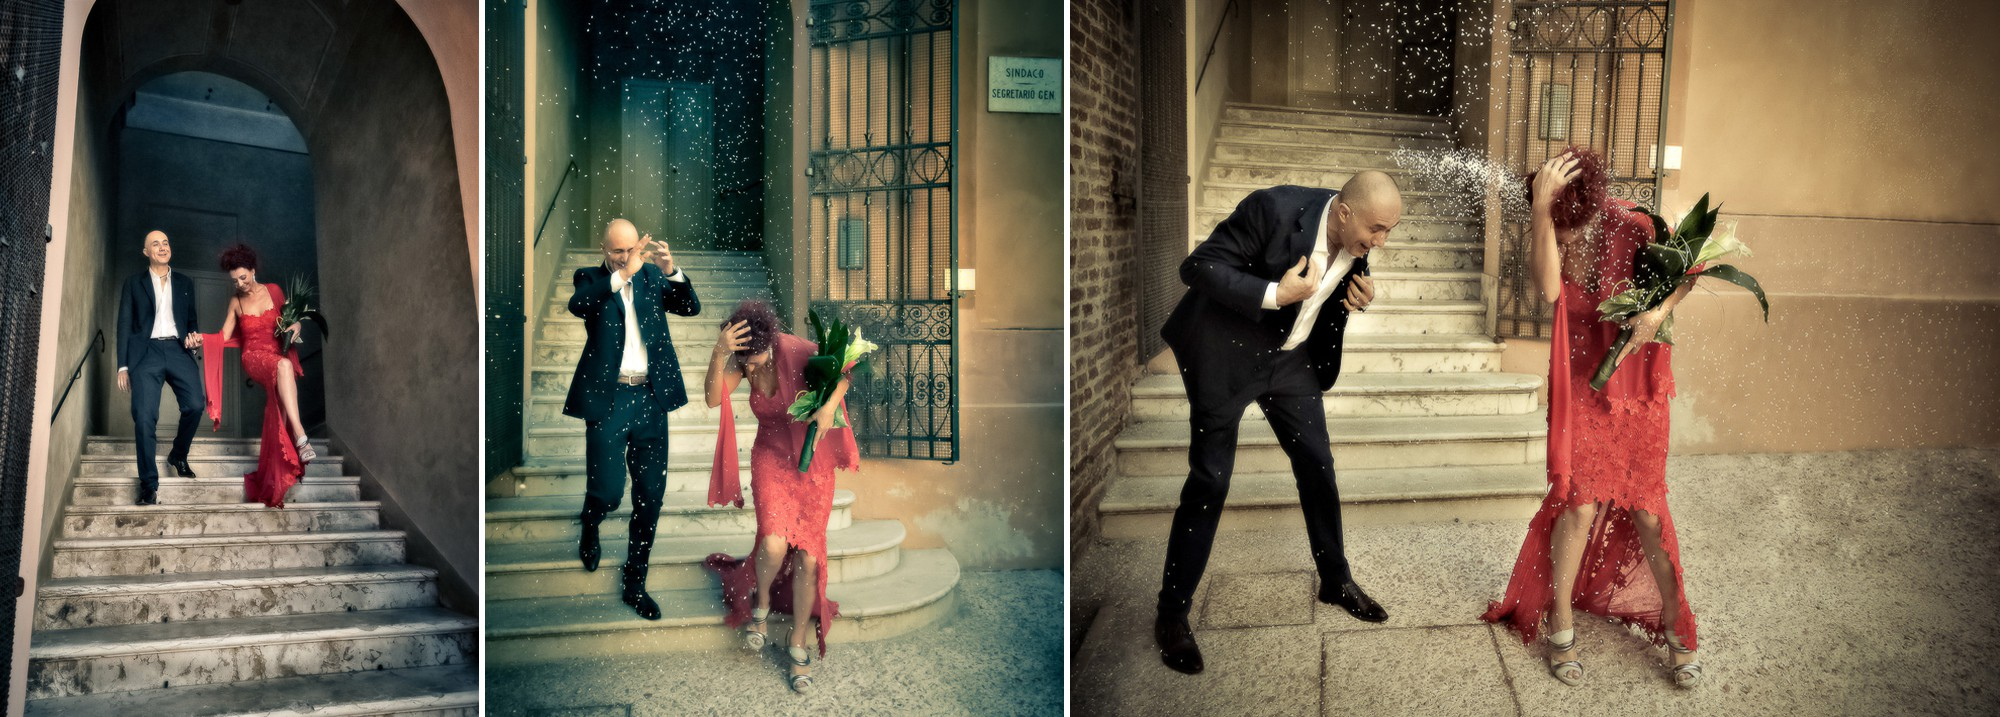 matrimonio-civile-tagg-photography